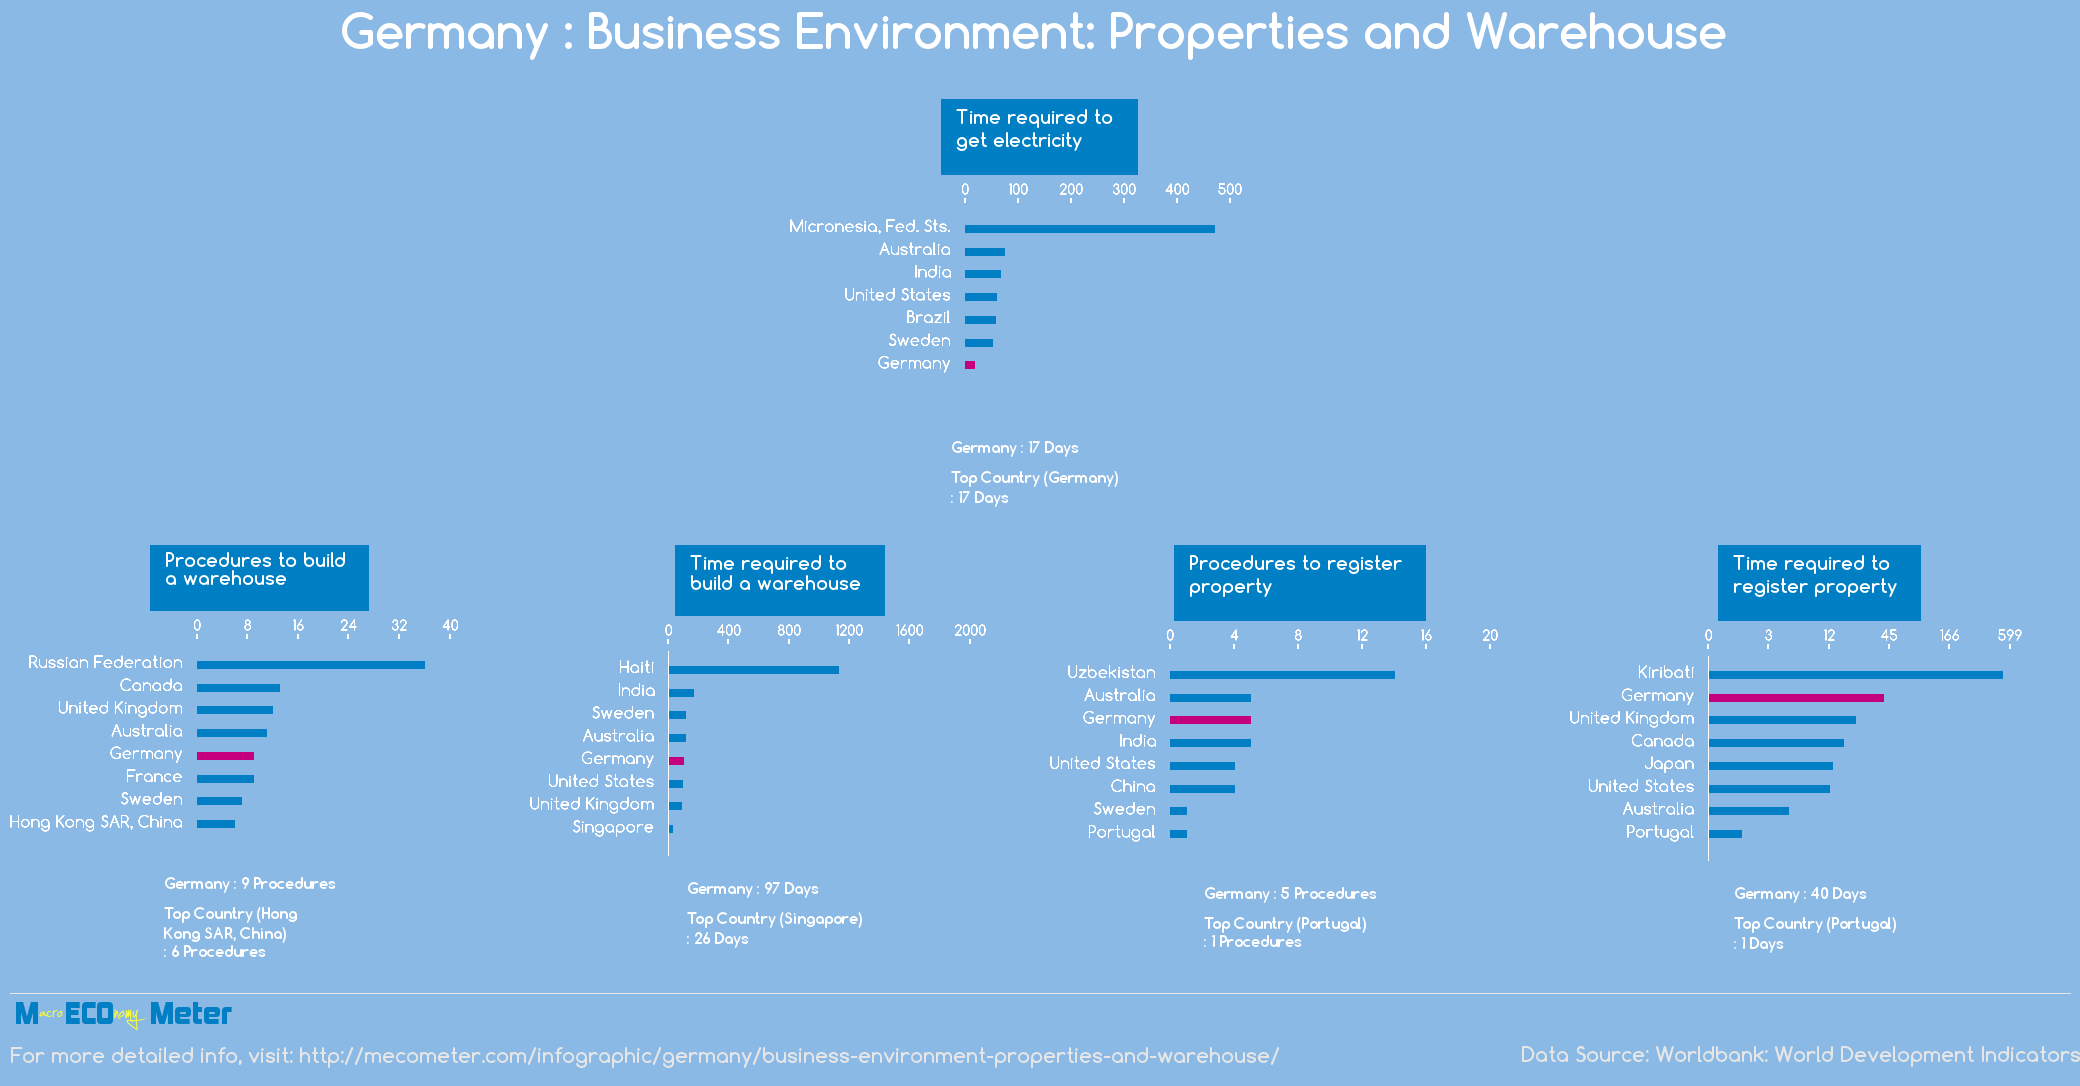 Germany : Business Environment: Properties and Warehouse